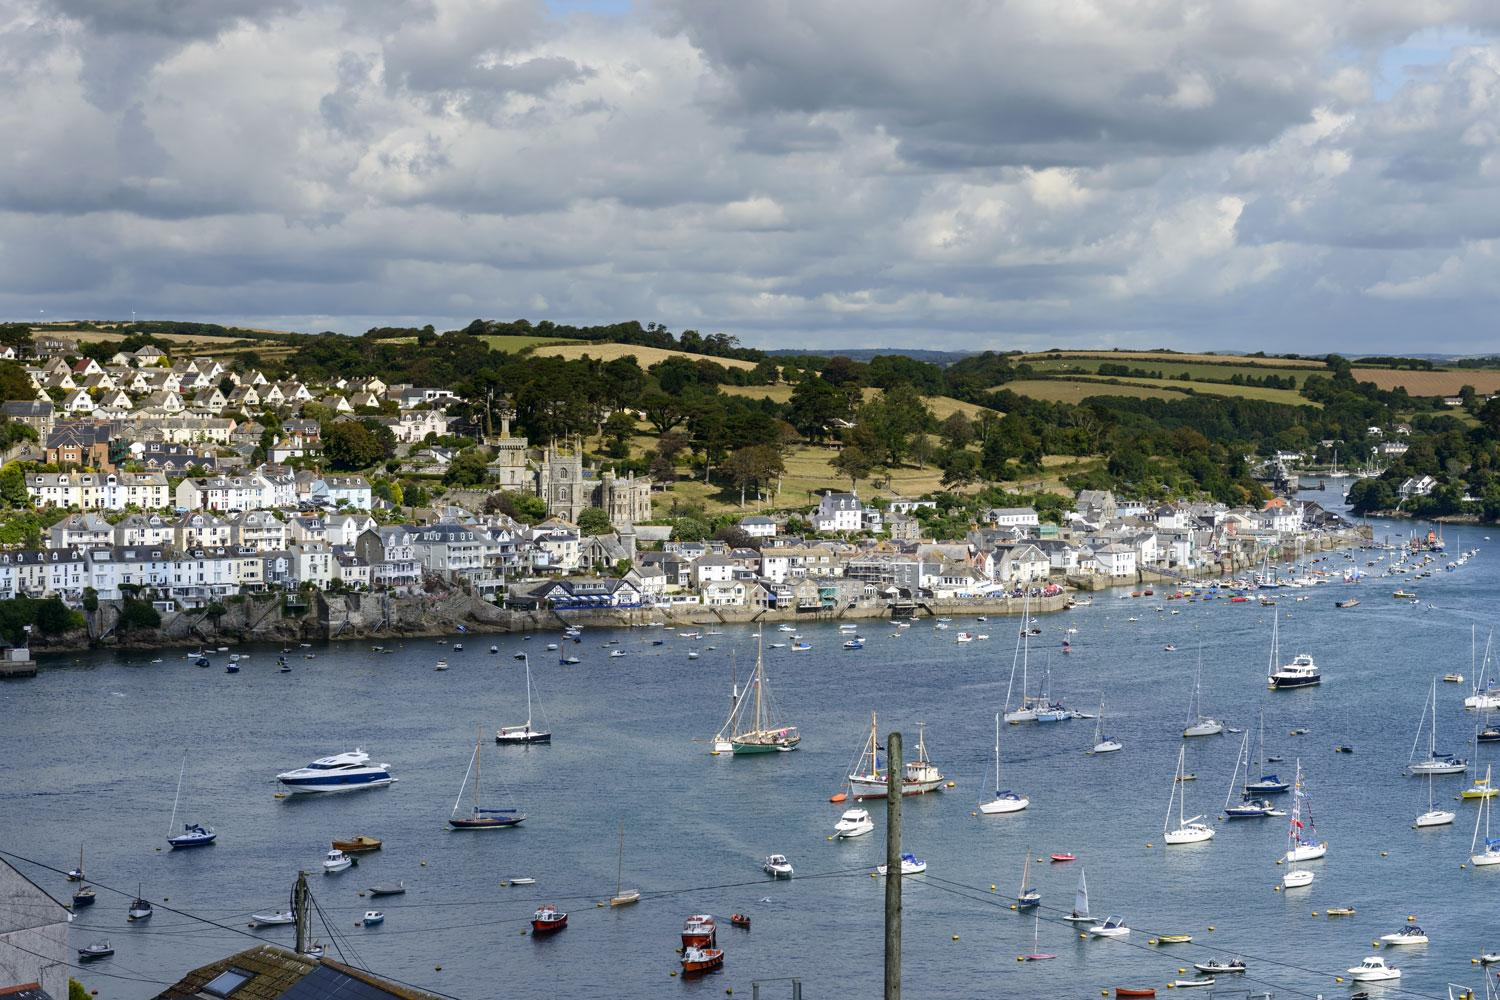 Views over the river estuary to the historic town of Fowey